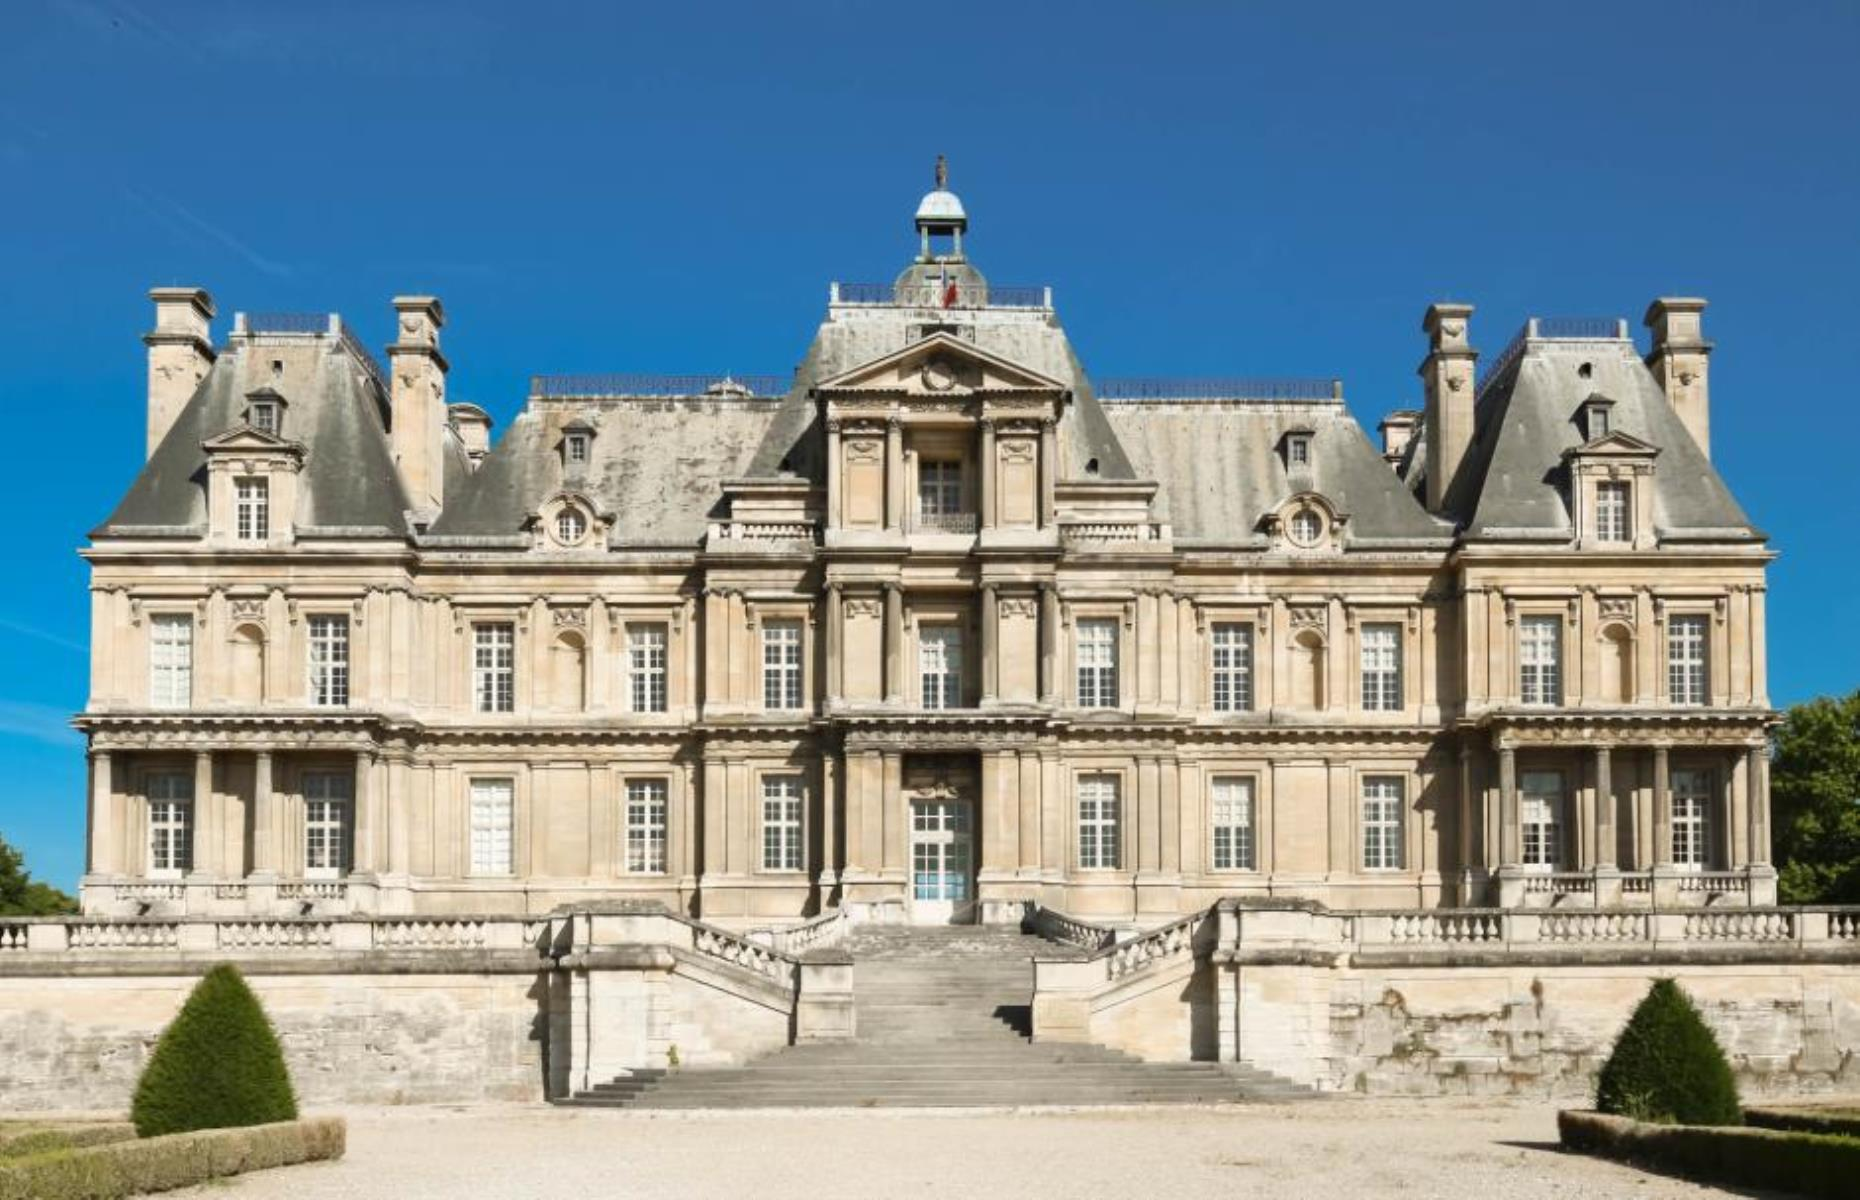 Slide 34 of 37: In 2010, when a Beijing property magnate visited Château de Maisons near Paris, he was so besotted he decided to model his new estate on the 17th-century castle. An eye-watering $50 million later, he had created Zhang Laffitte, complete with a moat and vineyards.